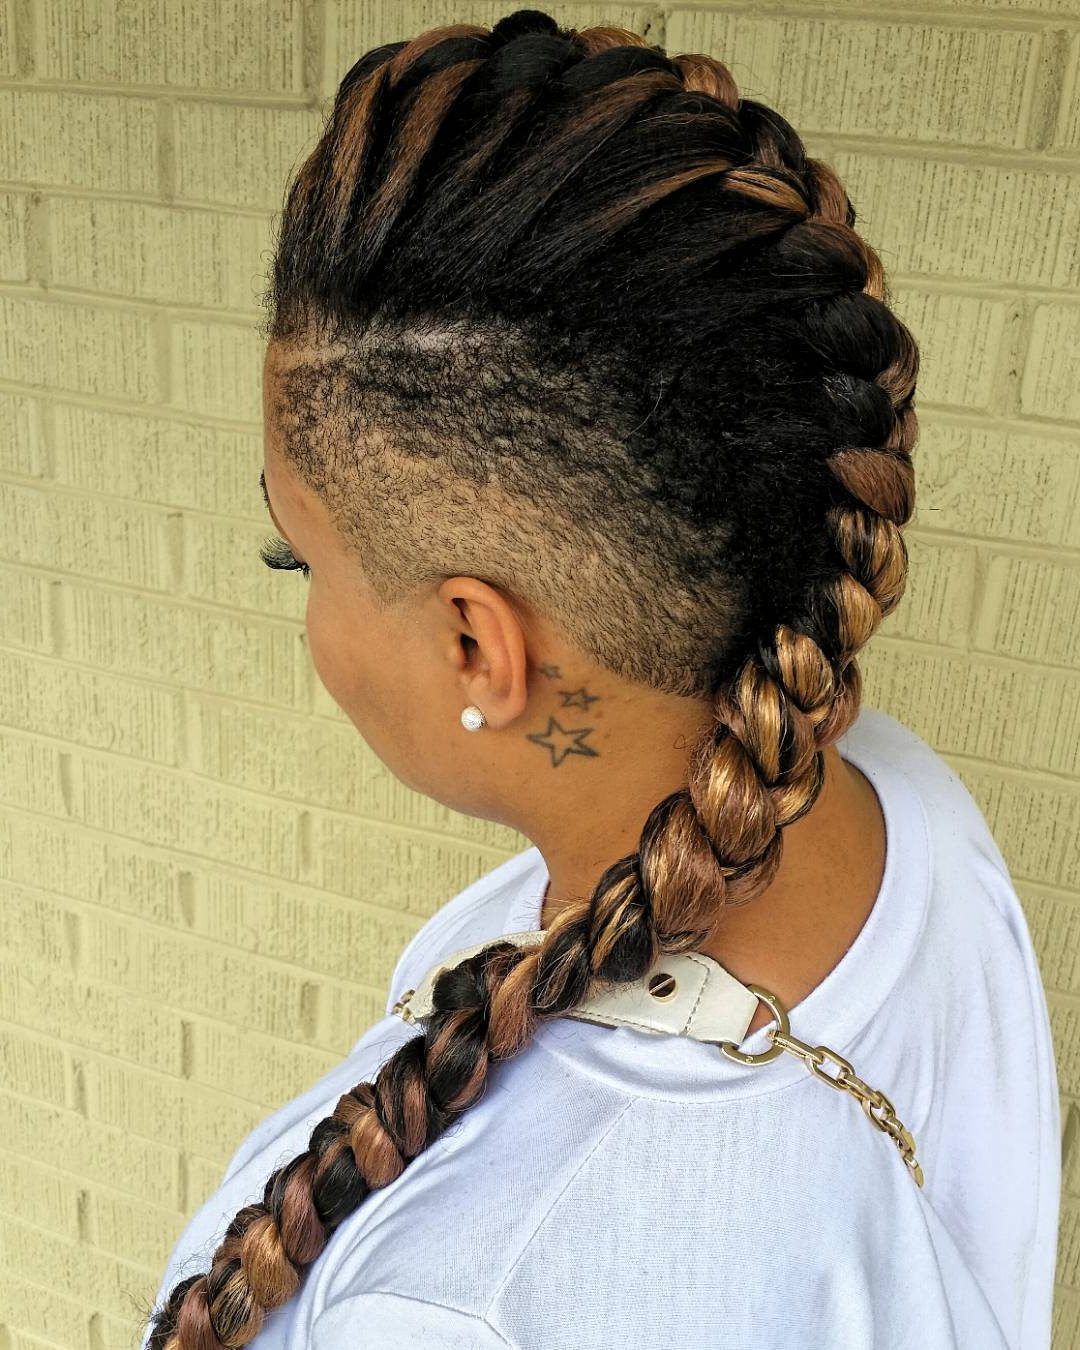 2020 Mohawk Braid Hairstyles With Extensions Pertaining To Mohawk Braids: 12 Braided Mohawk Hairstyles That Get Attention (View 12 of 20)